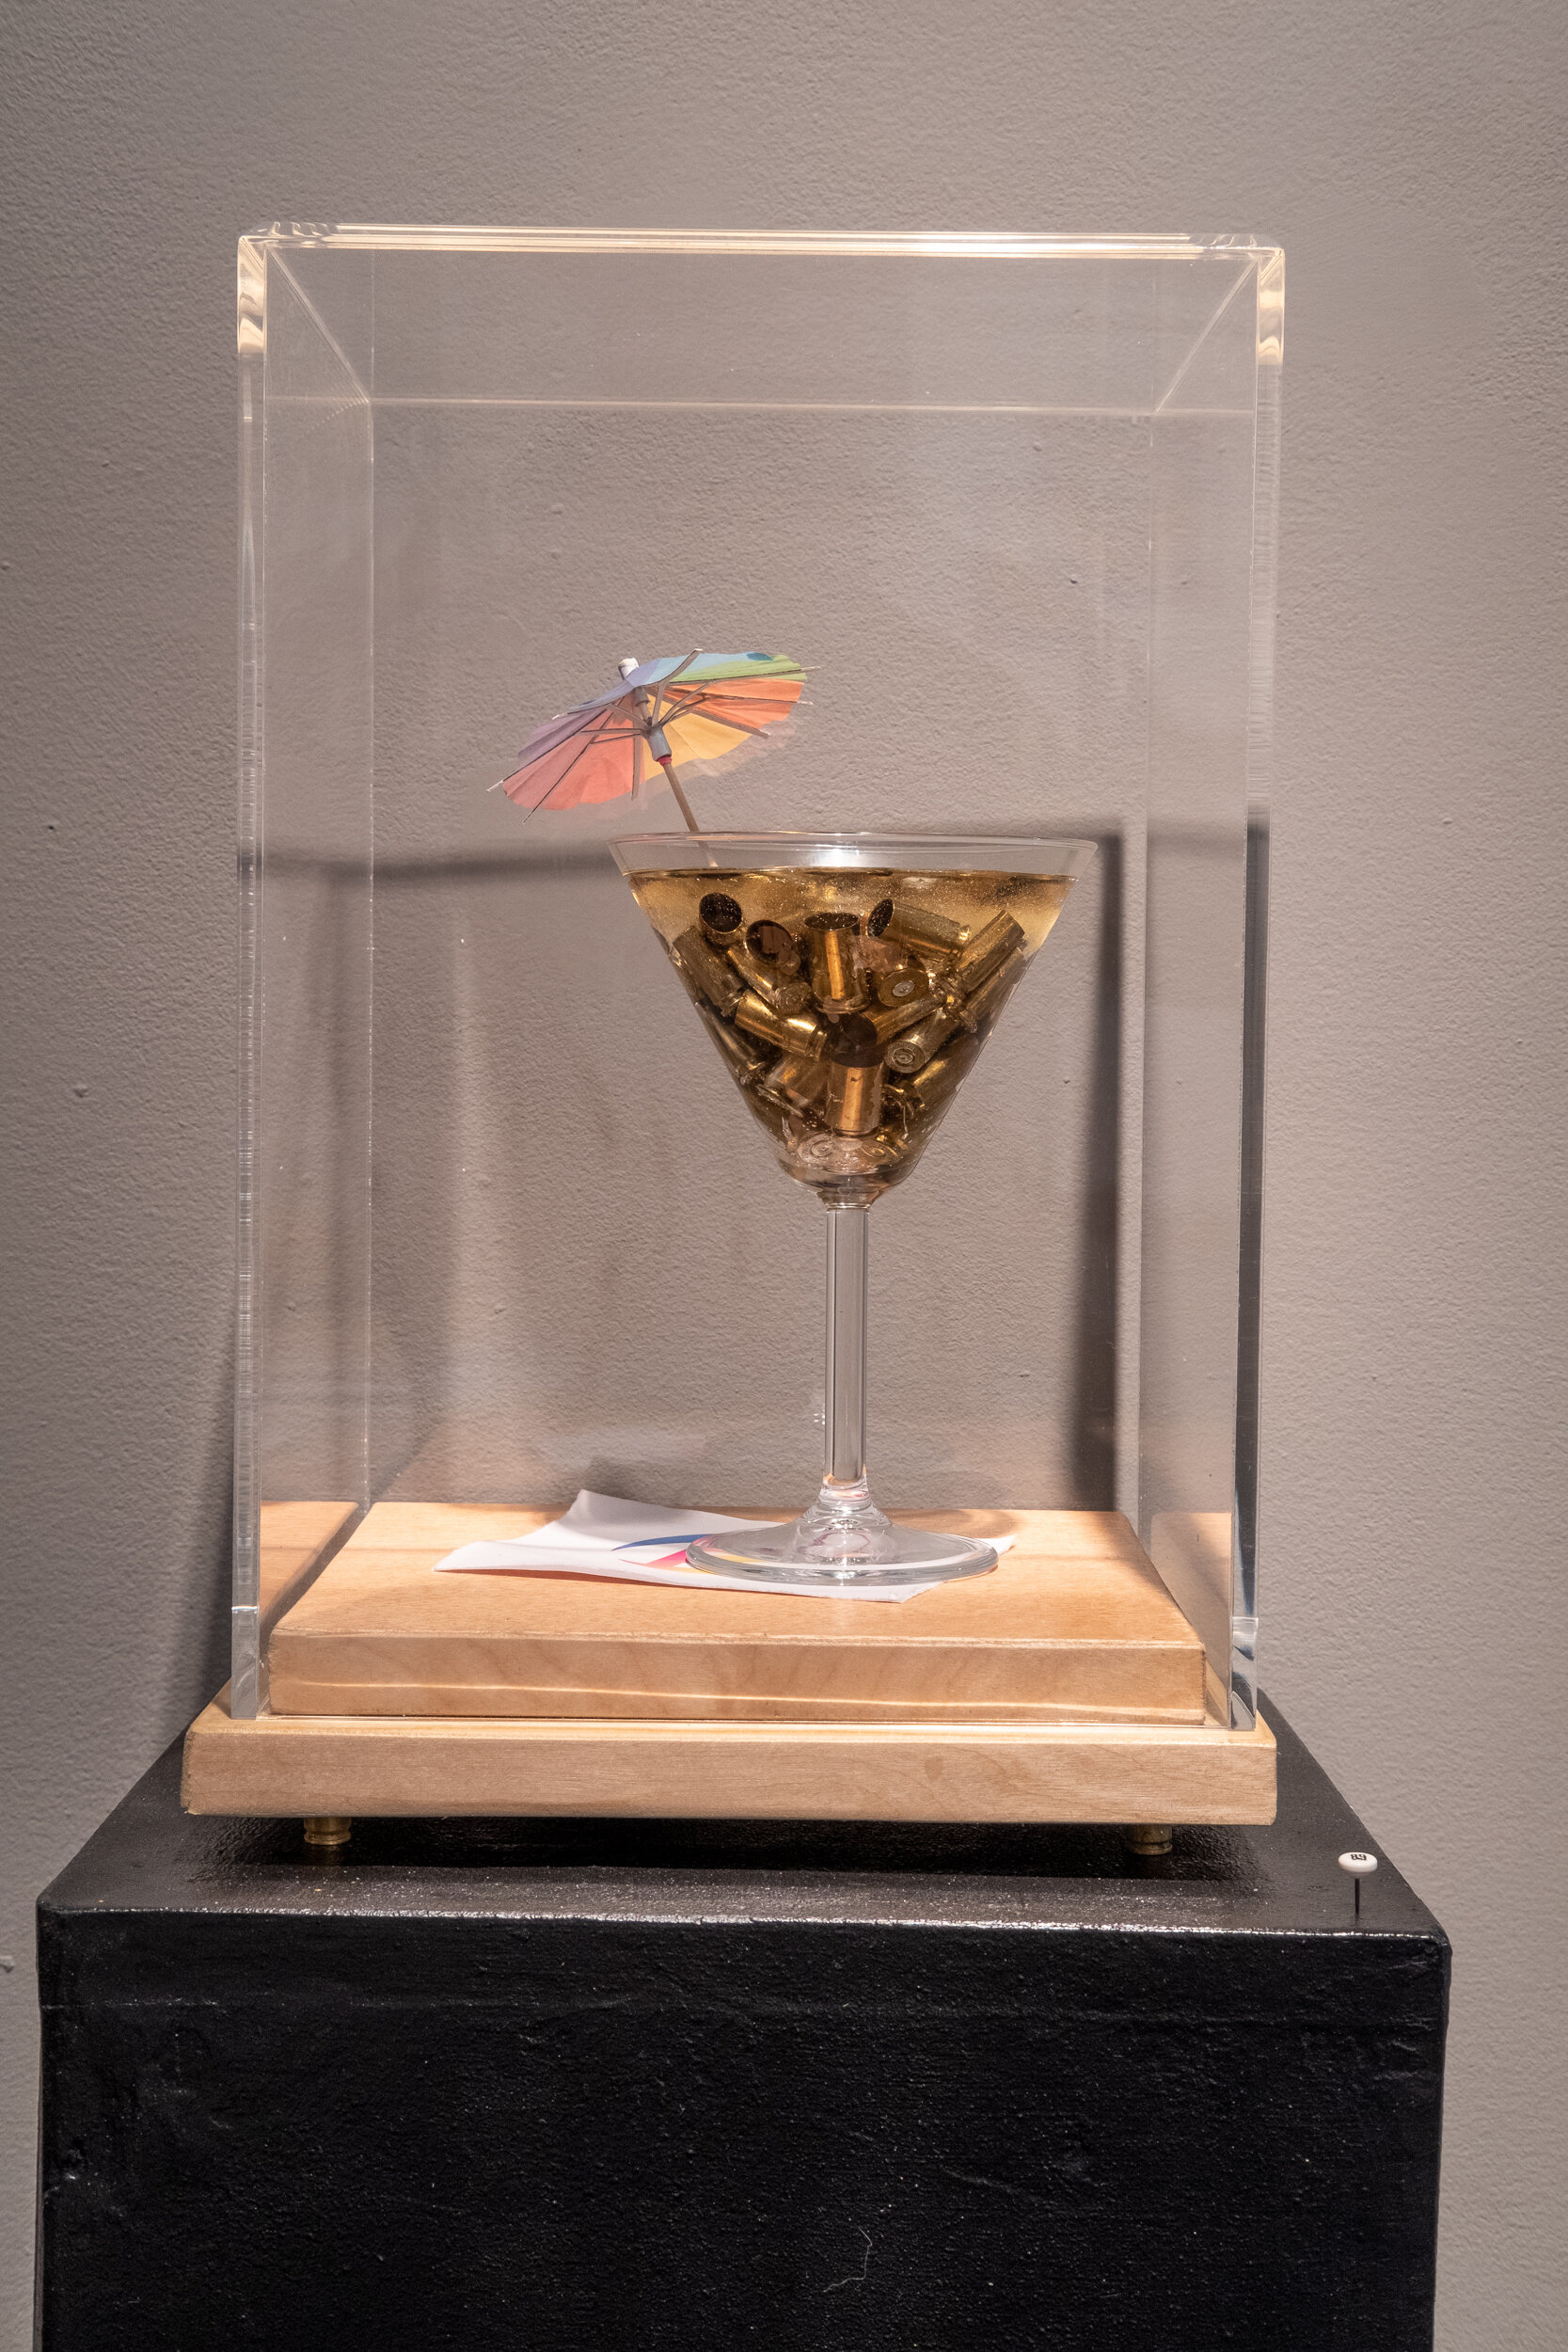 49 Cocktail      wooden base and plexi cover cocktail glass with 49 spent bullets (# of people who died in Pulse nightclub shooting), a rainbow colored cocktail umbrella, filled with clear resin standing on napkin with Pulse logo LJA 260G